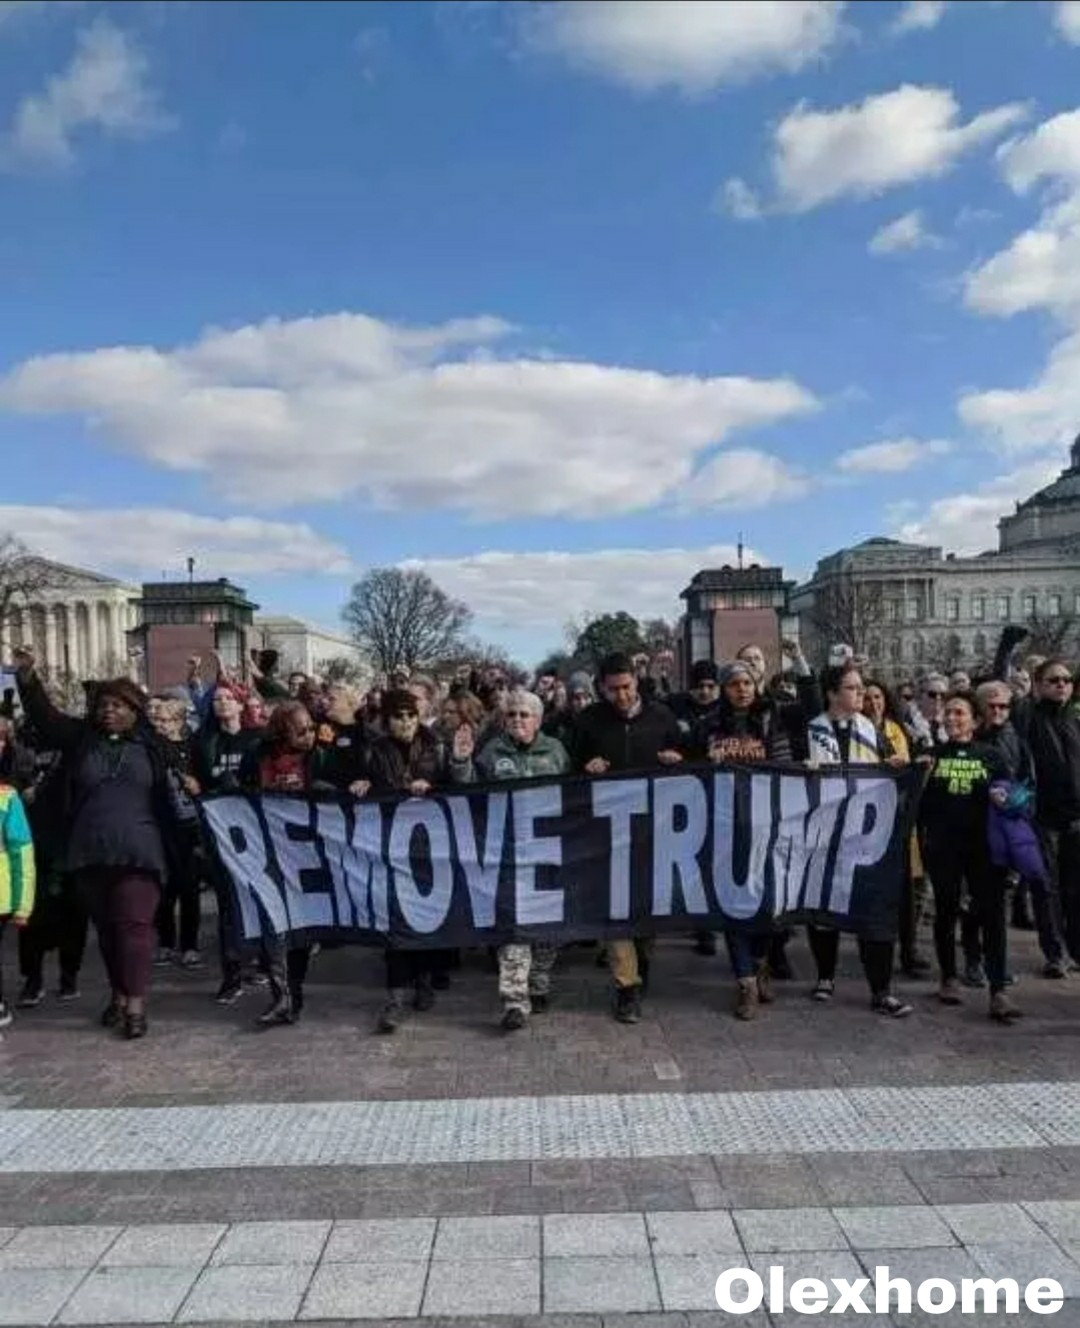 Protesters want Trump Removed as president